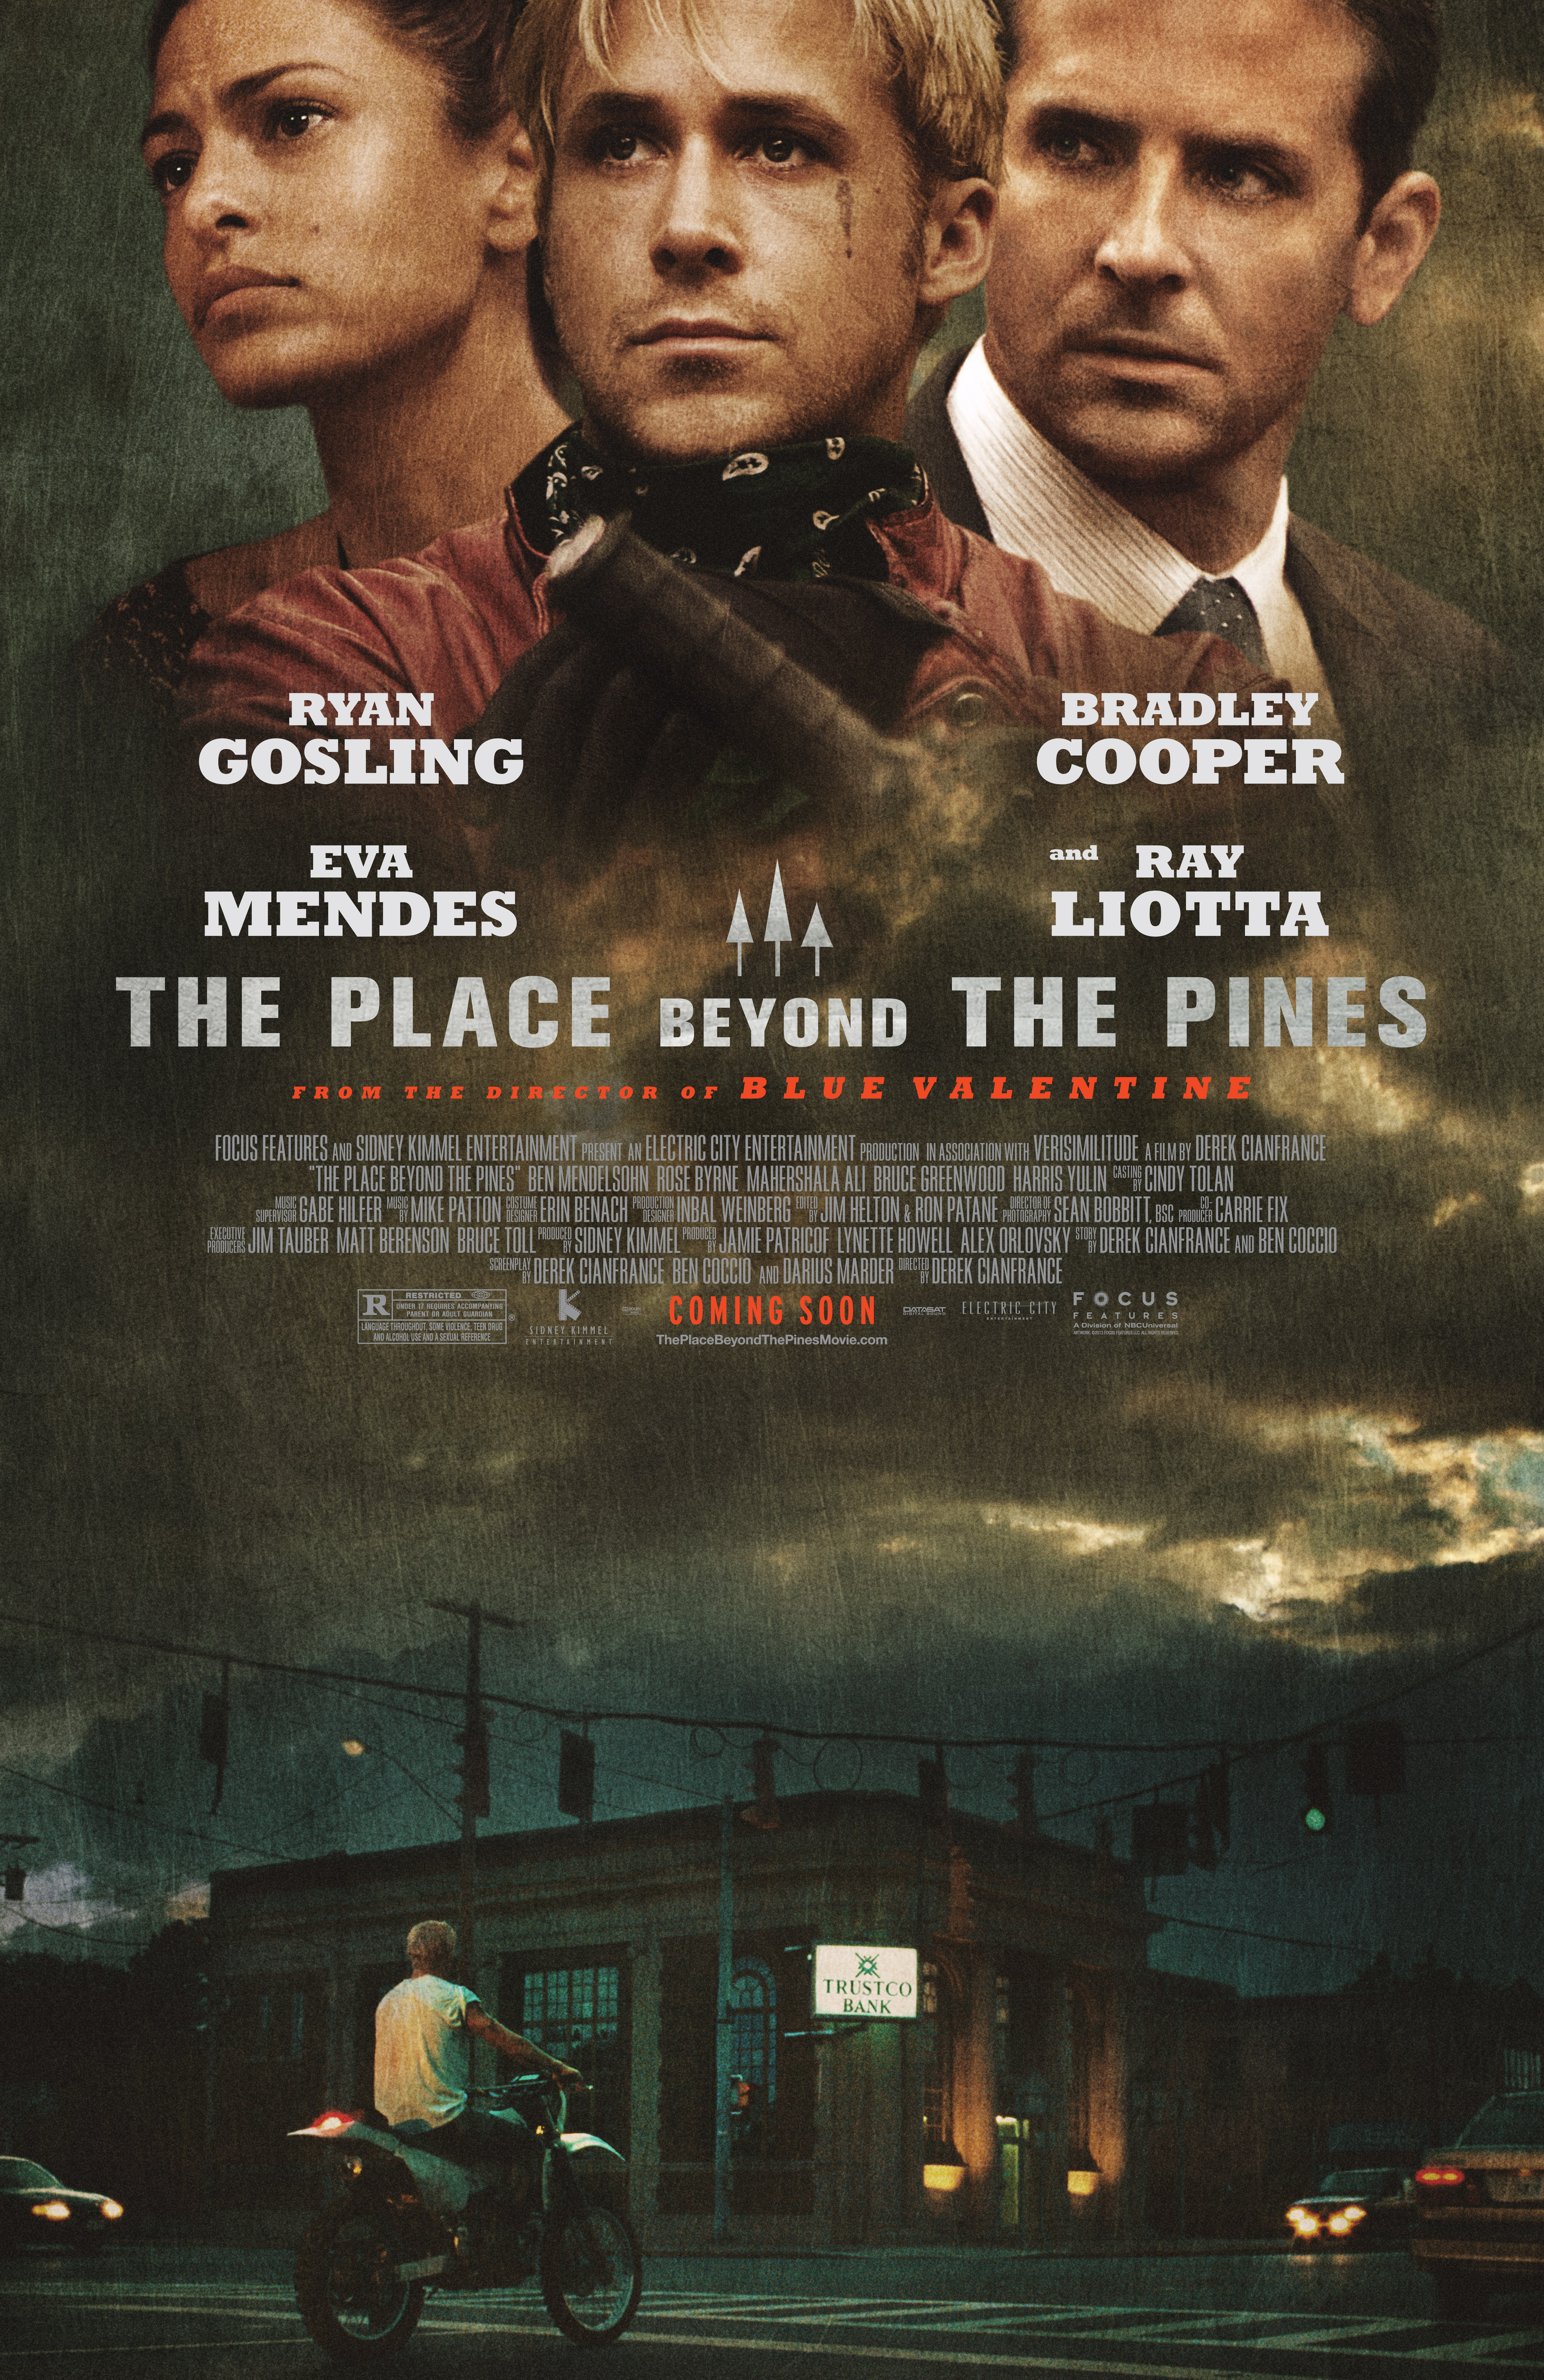 The Place Beyond the Pines Official Poster1 Go to The Place Beyond the Pines with New Behind the Scenes Photos